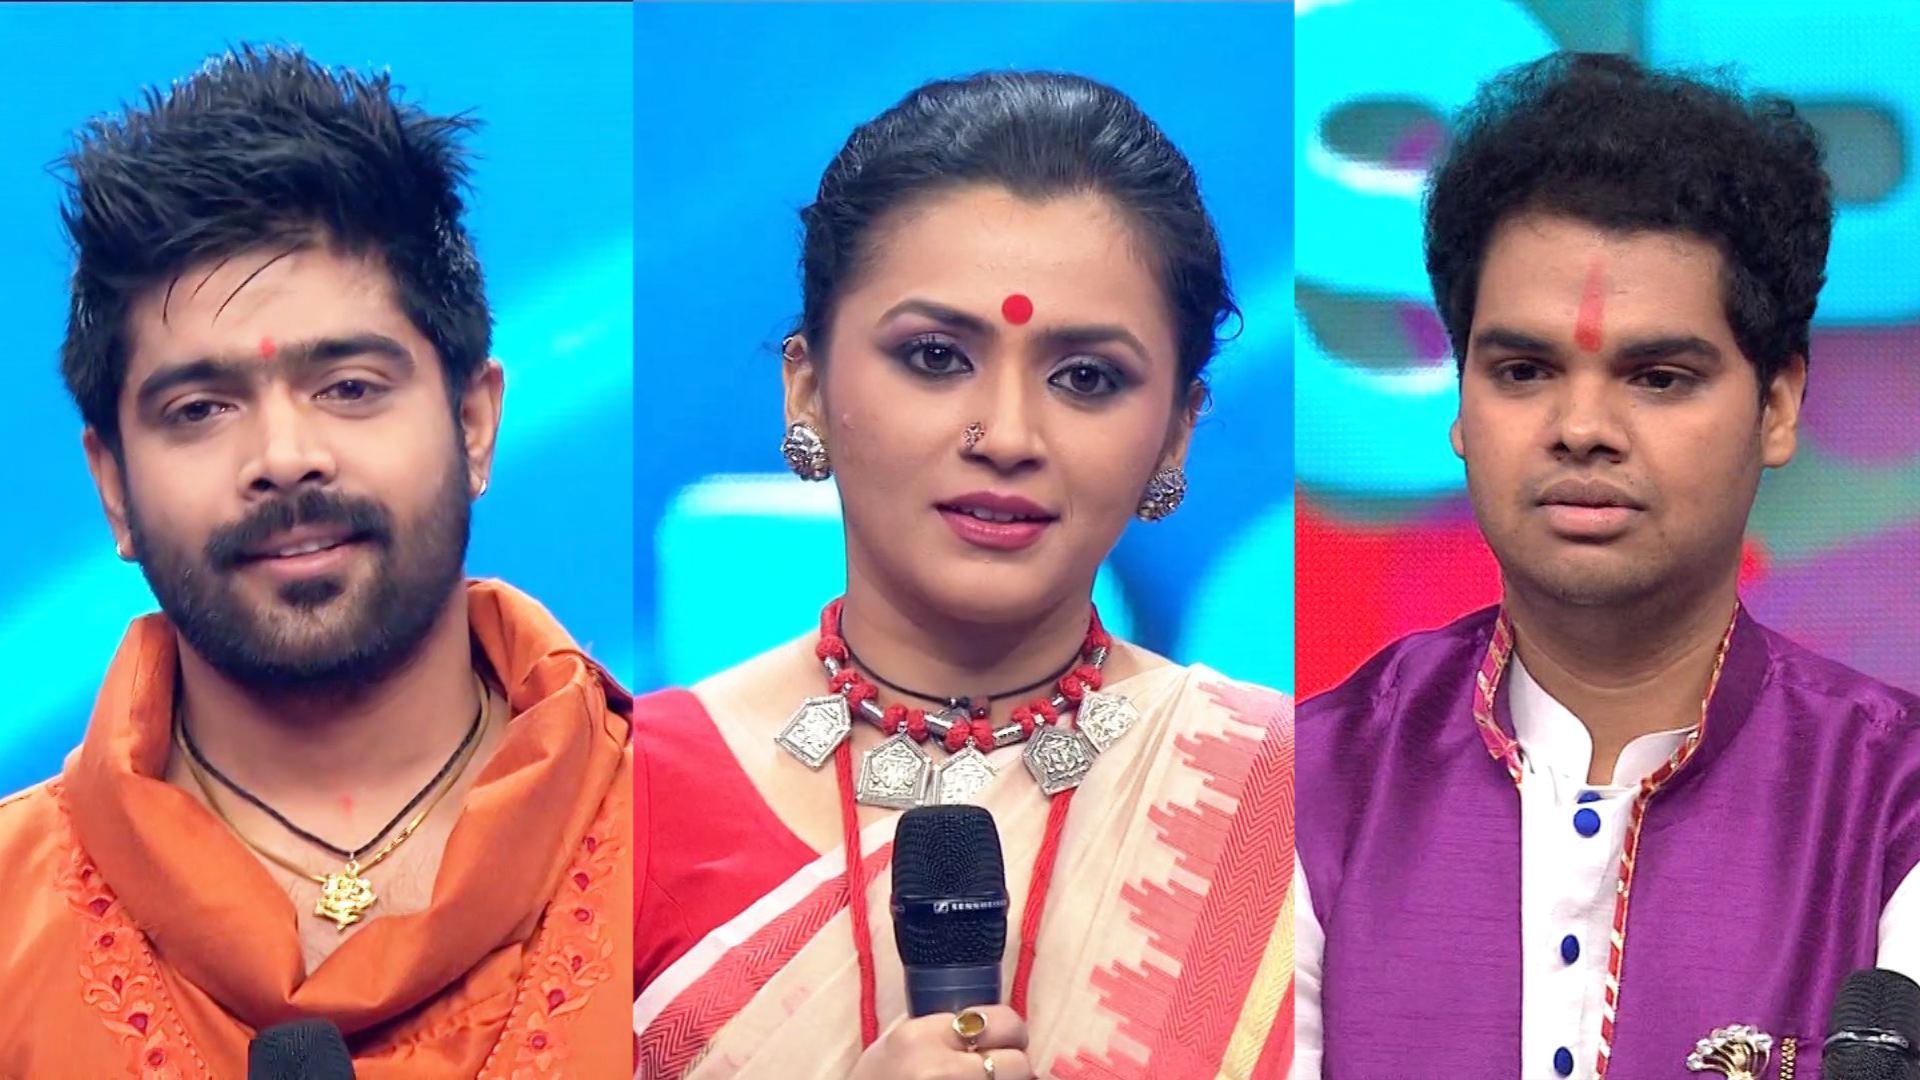 Indian Idol 9 | The south brigade surges ahead in title race